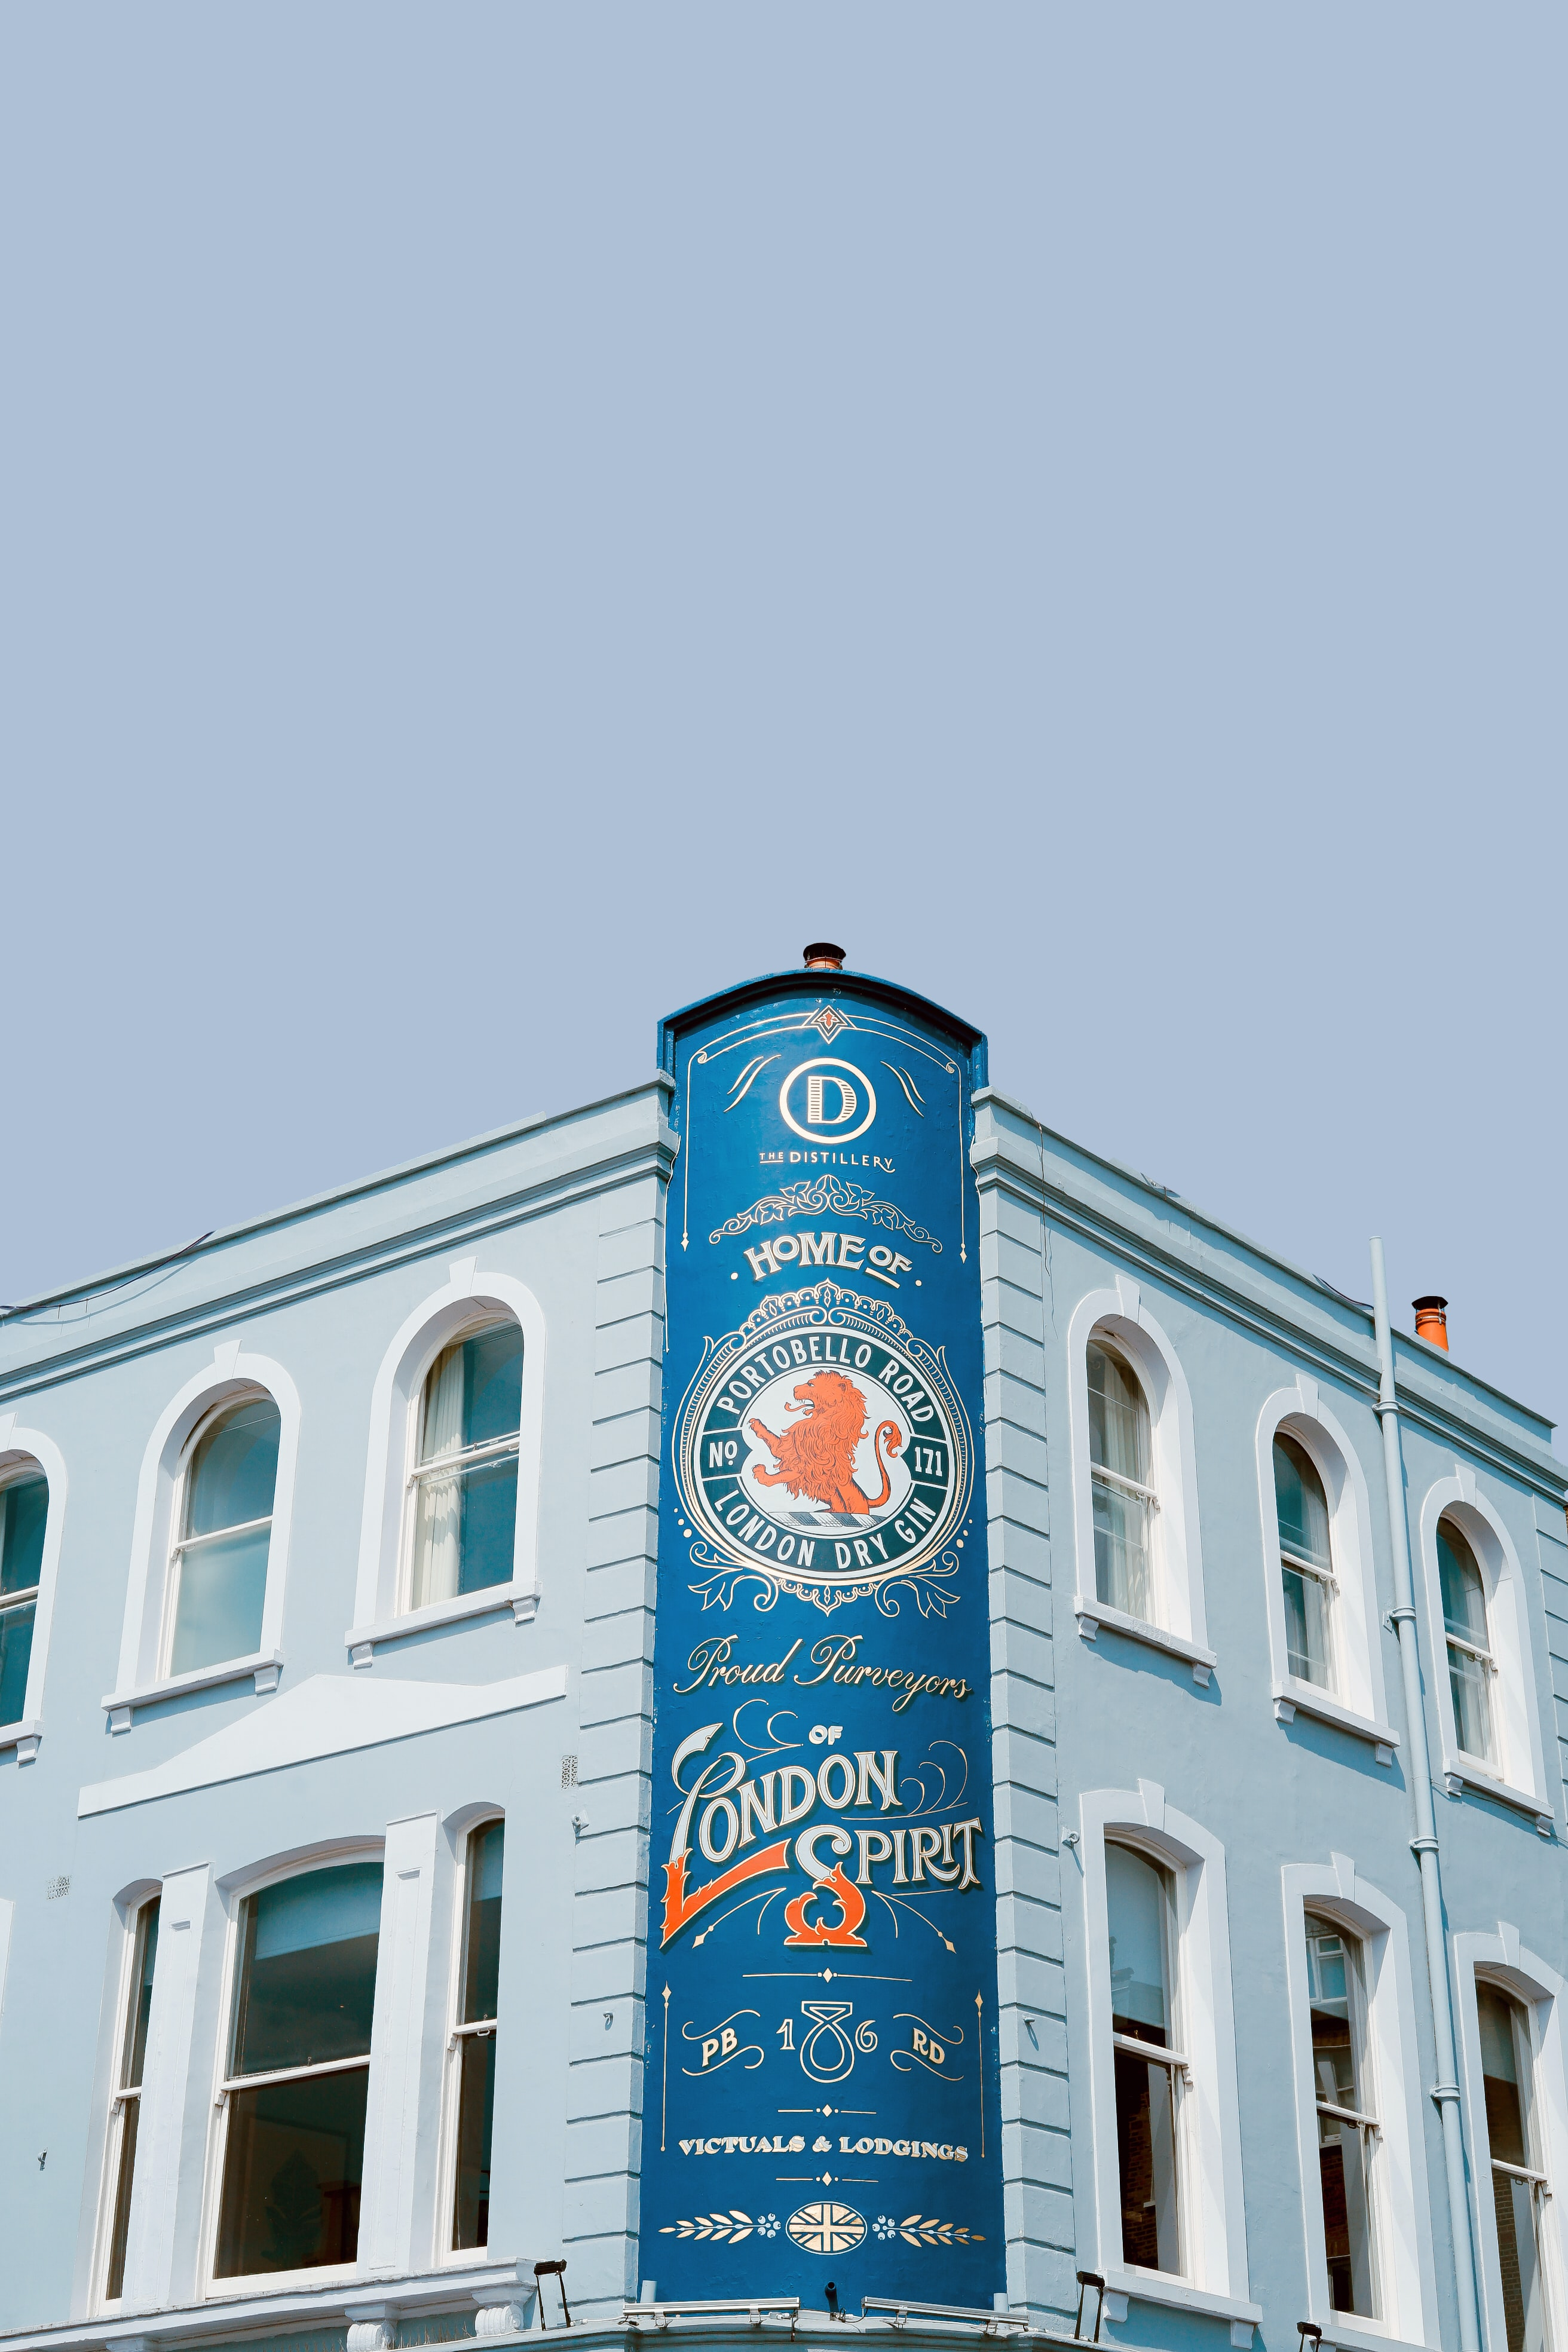 blue Home of Proud of London Spirit banner